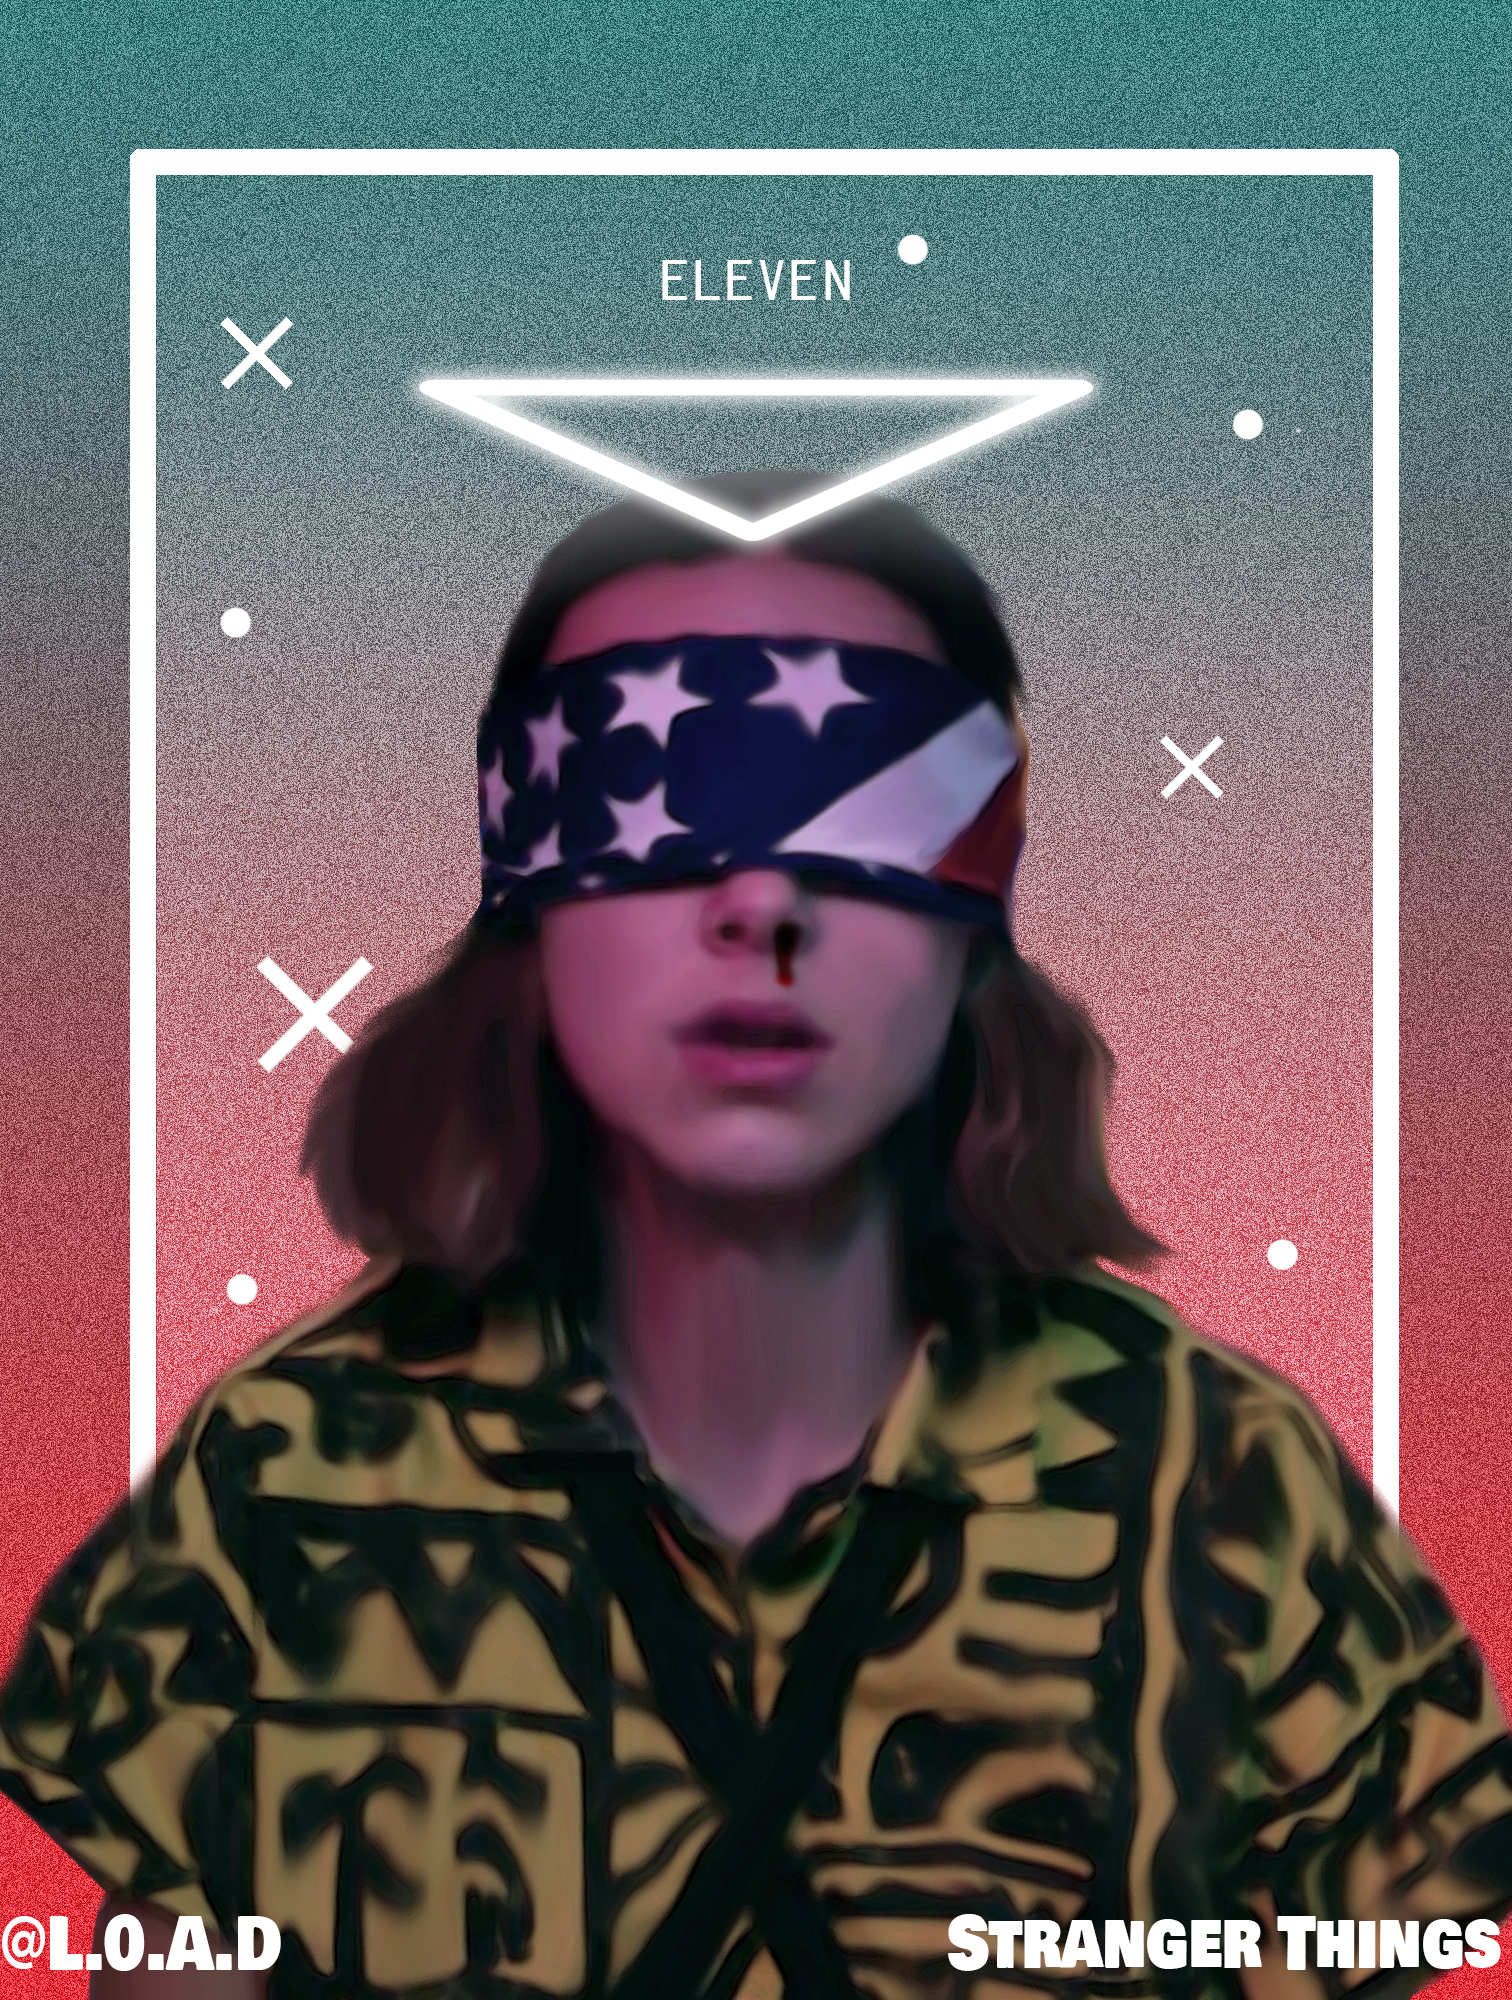 Stranger Things Poster Posterspy Netflix unveiled character posters for the highly anticipated stranger things 3, which premieres july 4 on the streaming service. stranger things poster posterspy